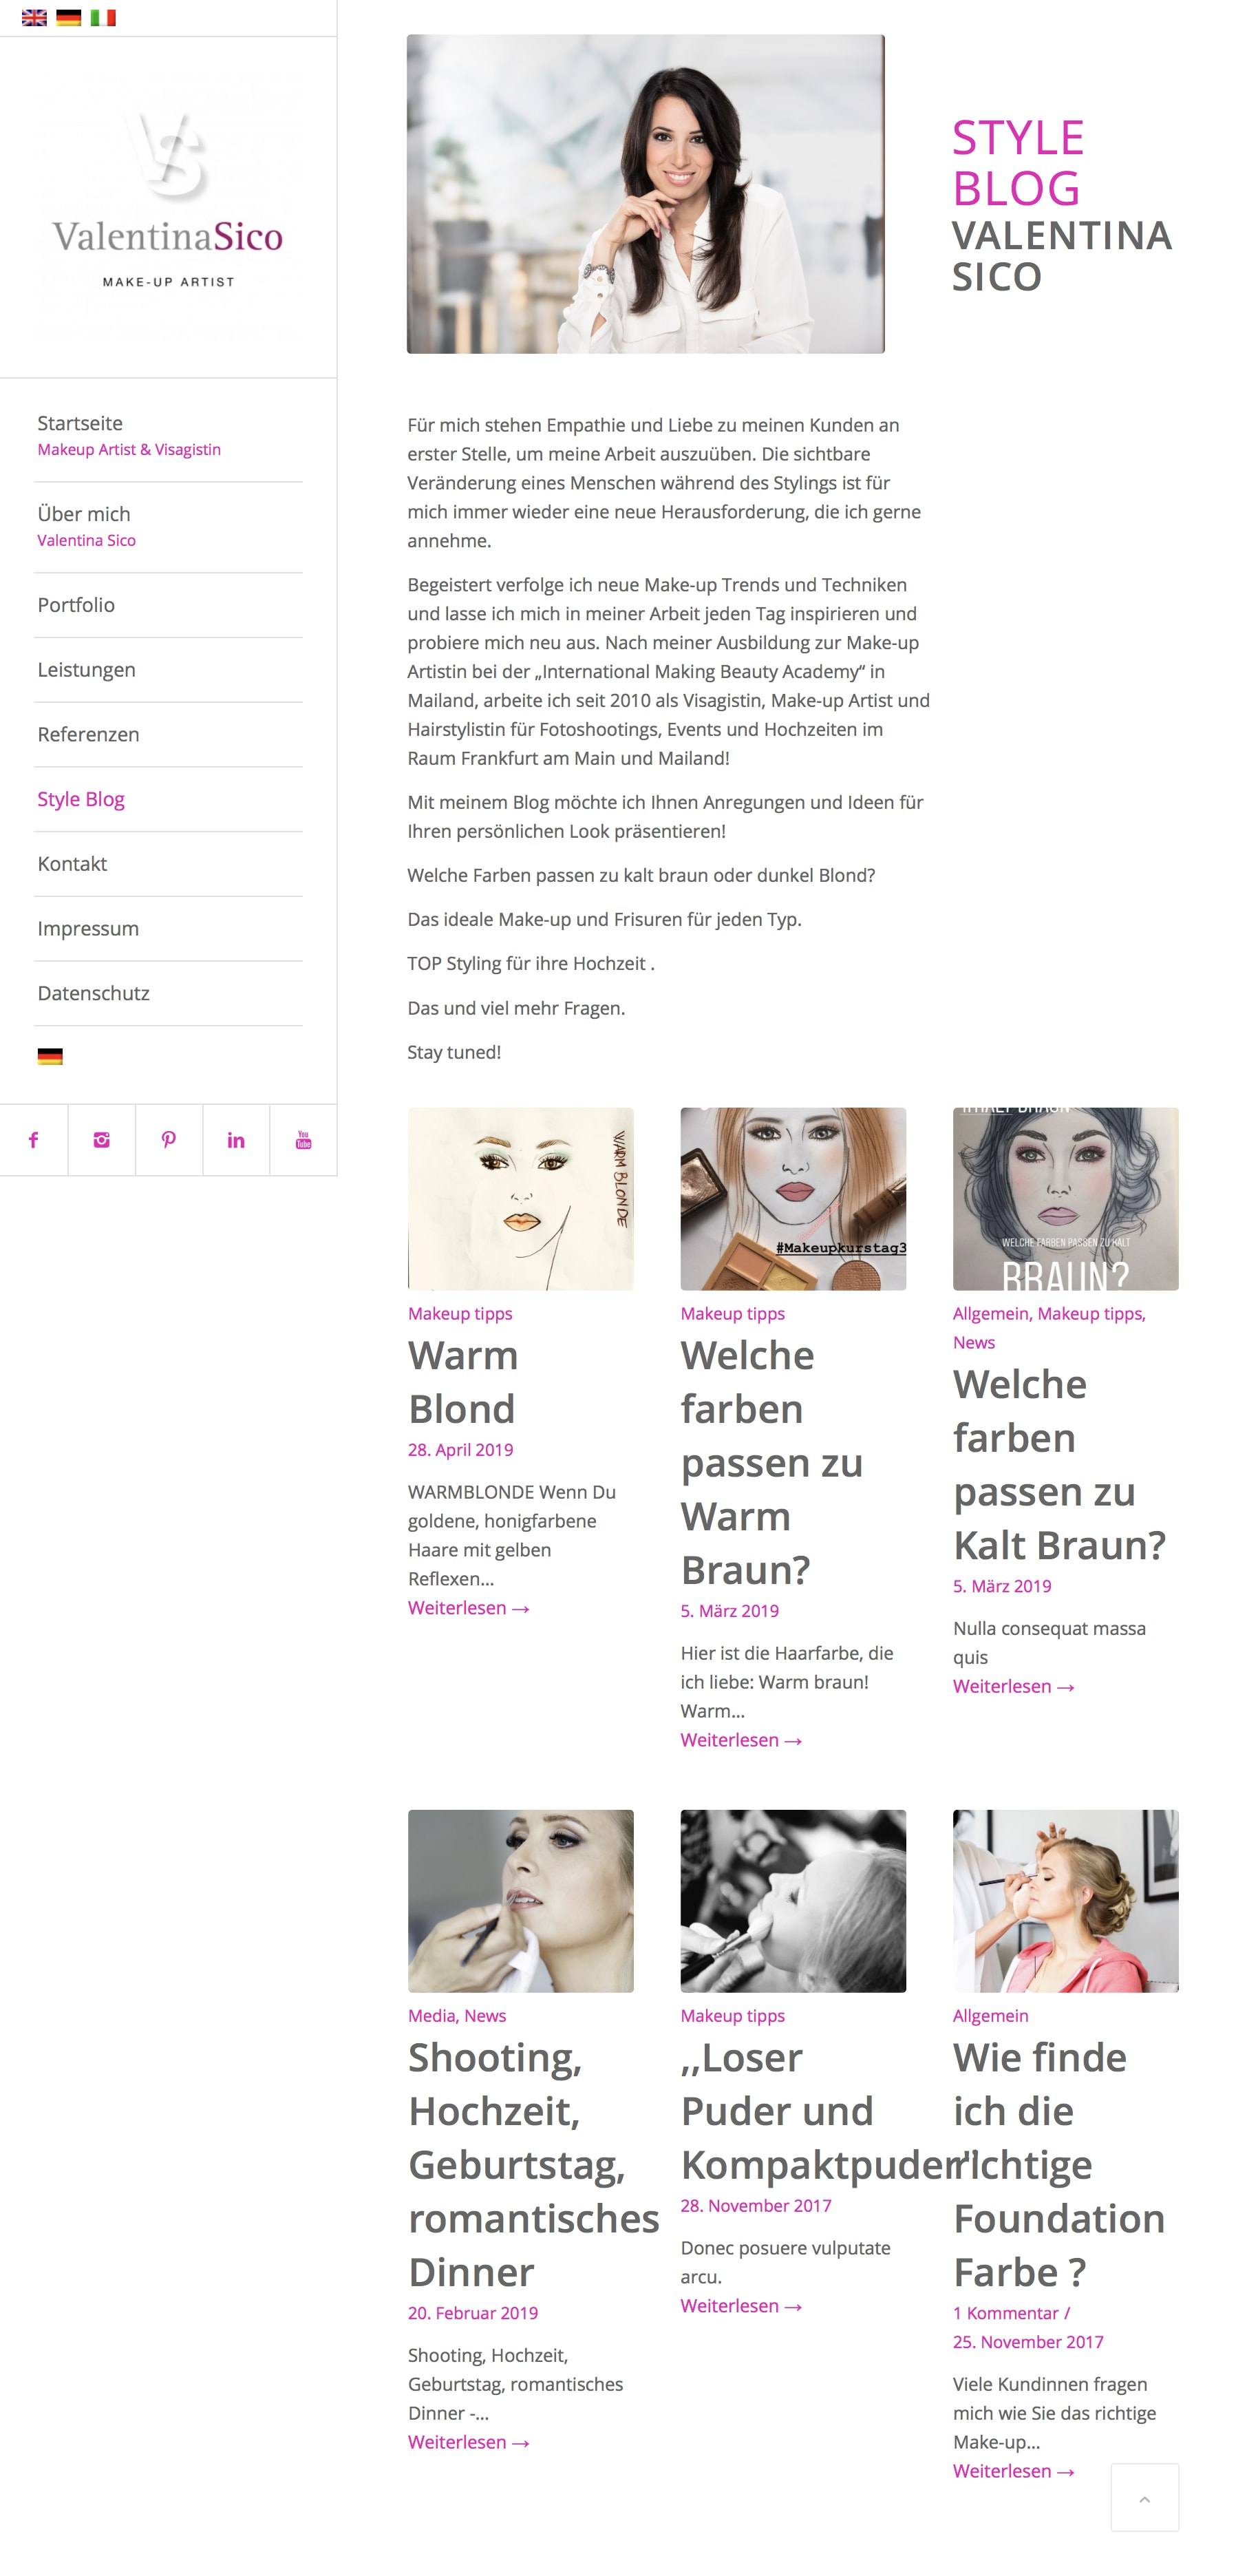 Webdesign Style Blog Visagistin, Make-up Artist und Hairstylistin Valentina Sico durch Webdesigner Ronald Wissler Frankfurt